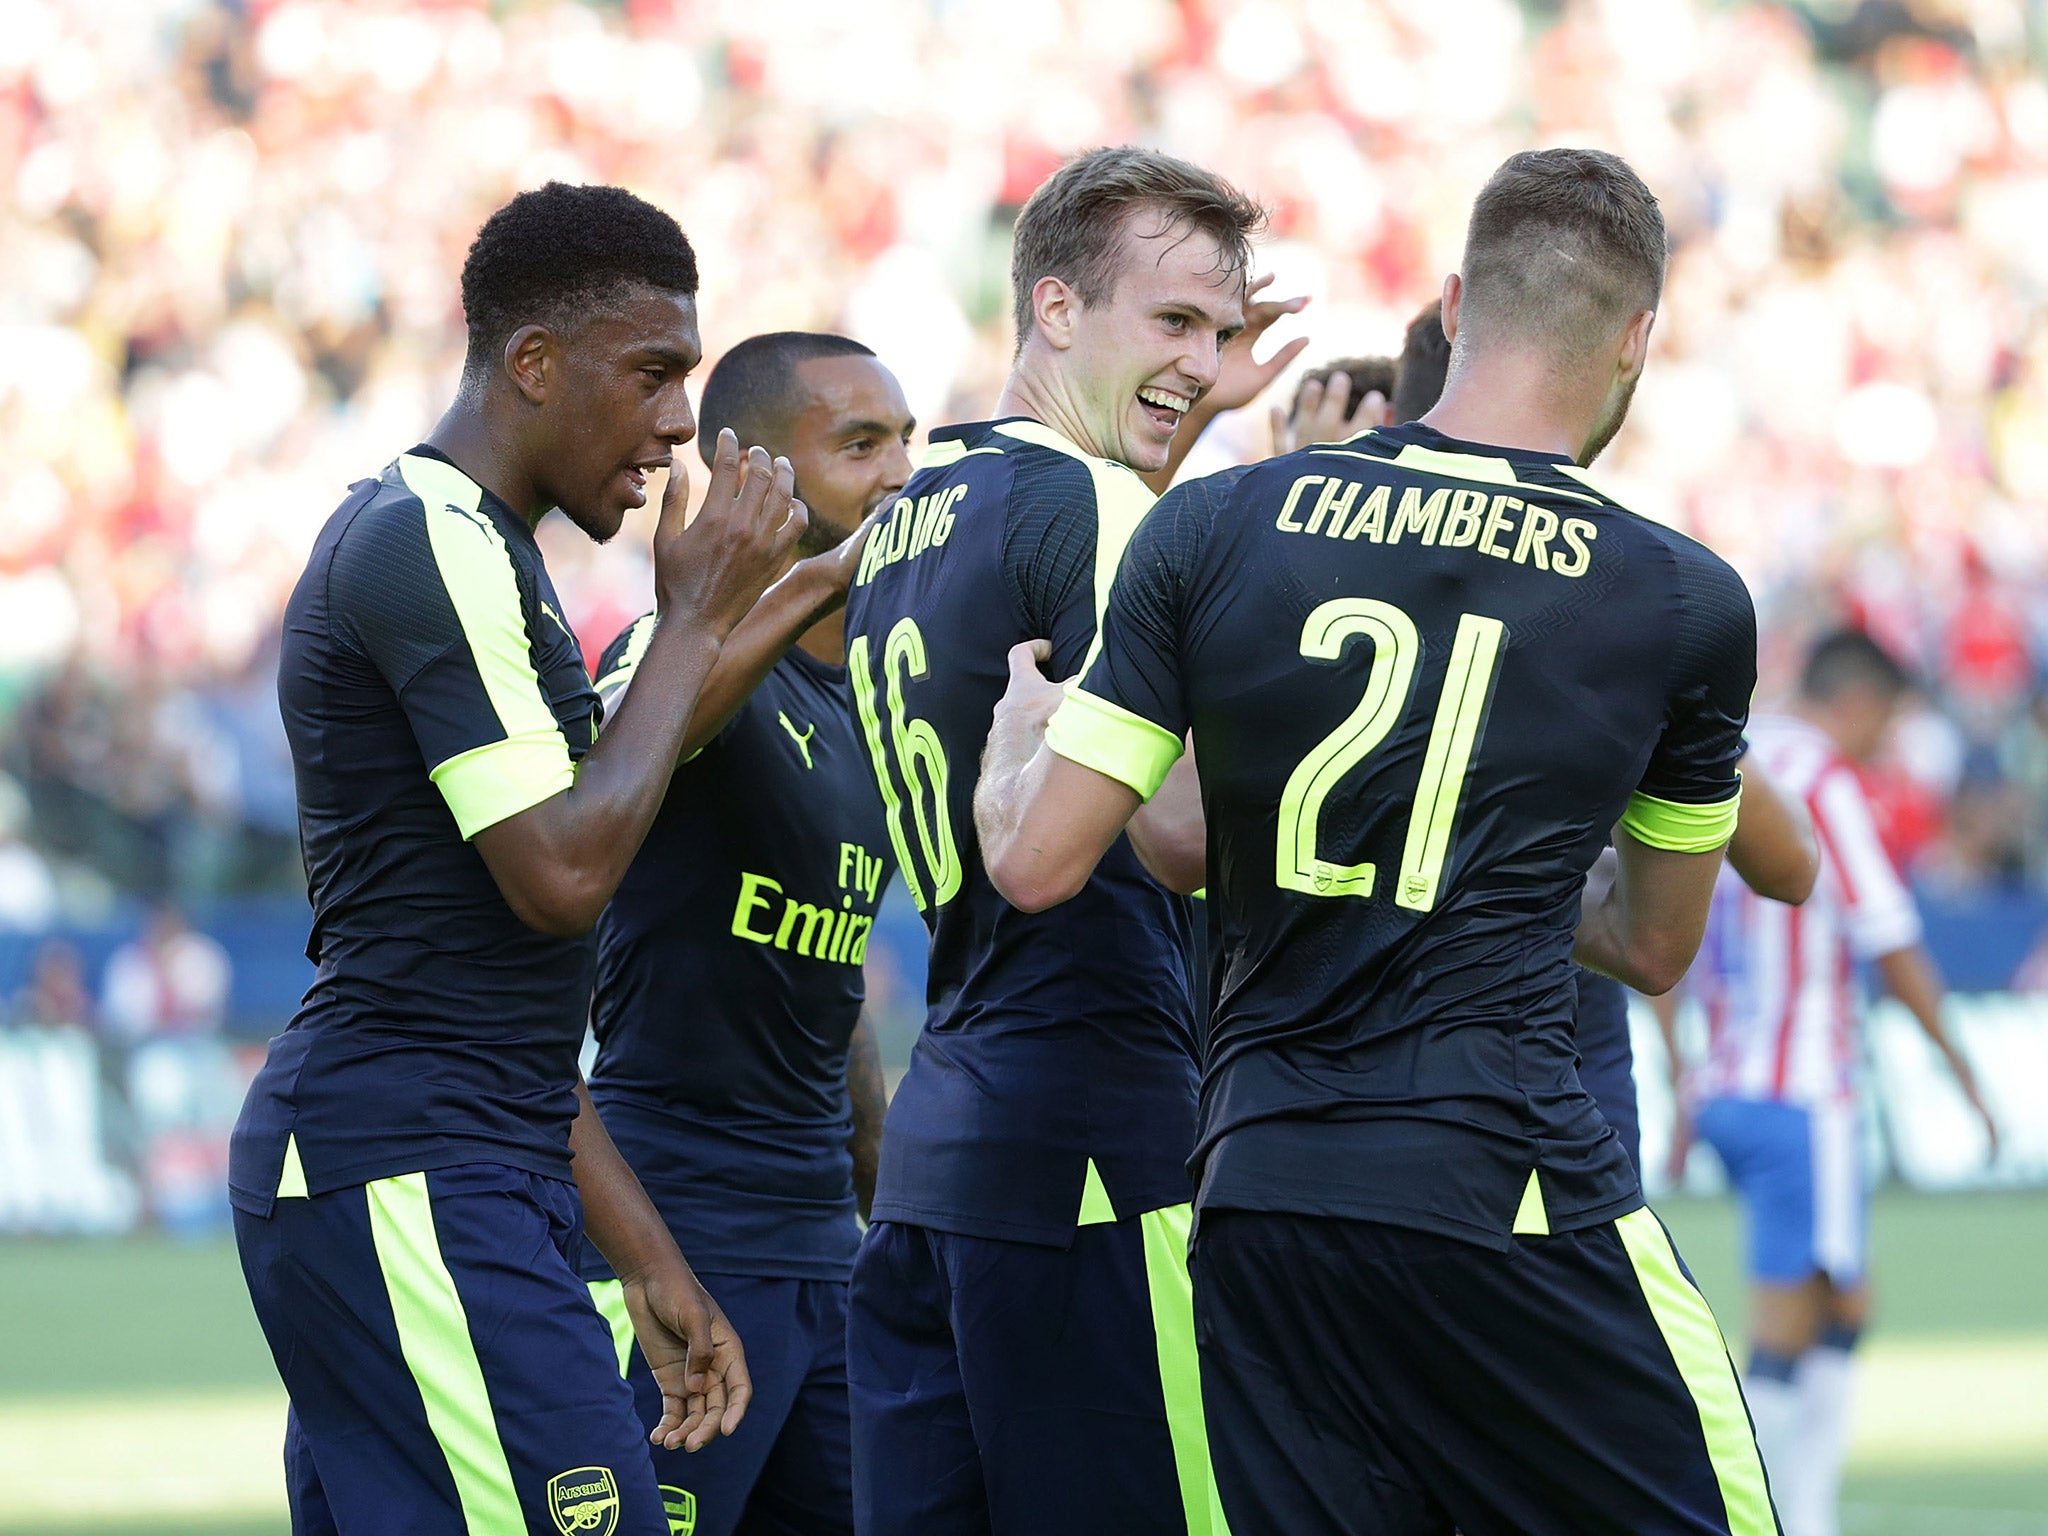 Arsenal vs Chivas match report: Rob Holding opens his Gunners account as Alex Oxlade-Chamberlain pushes case